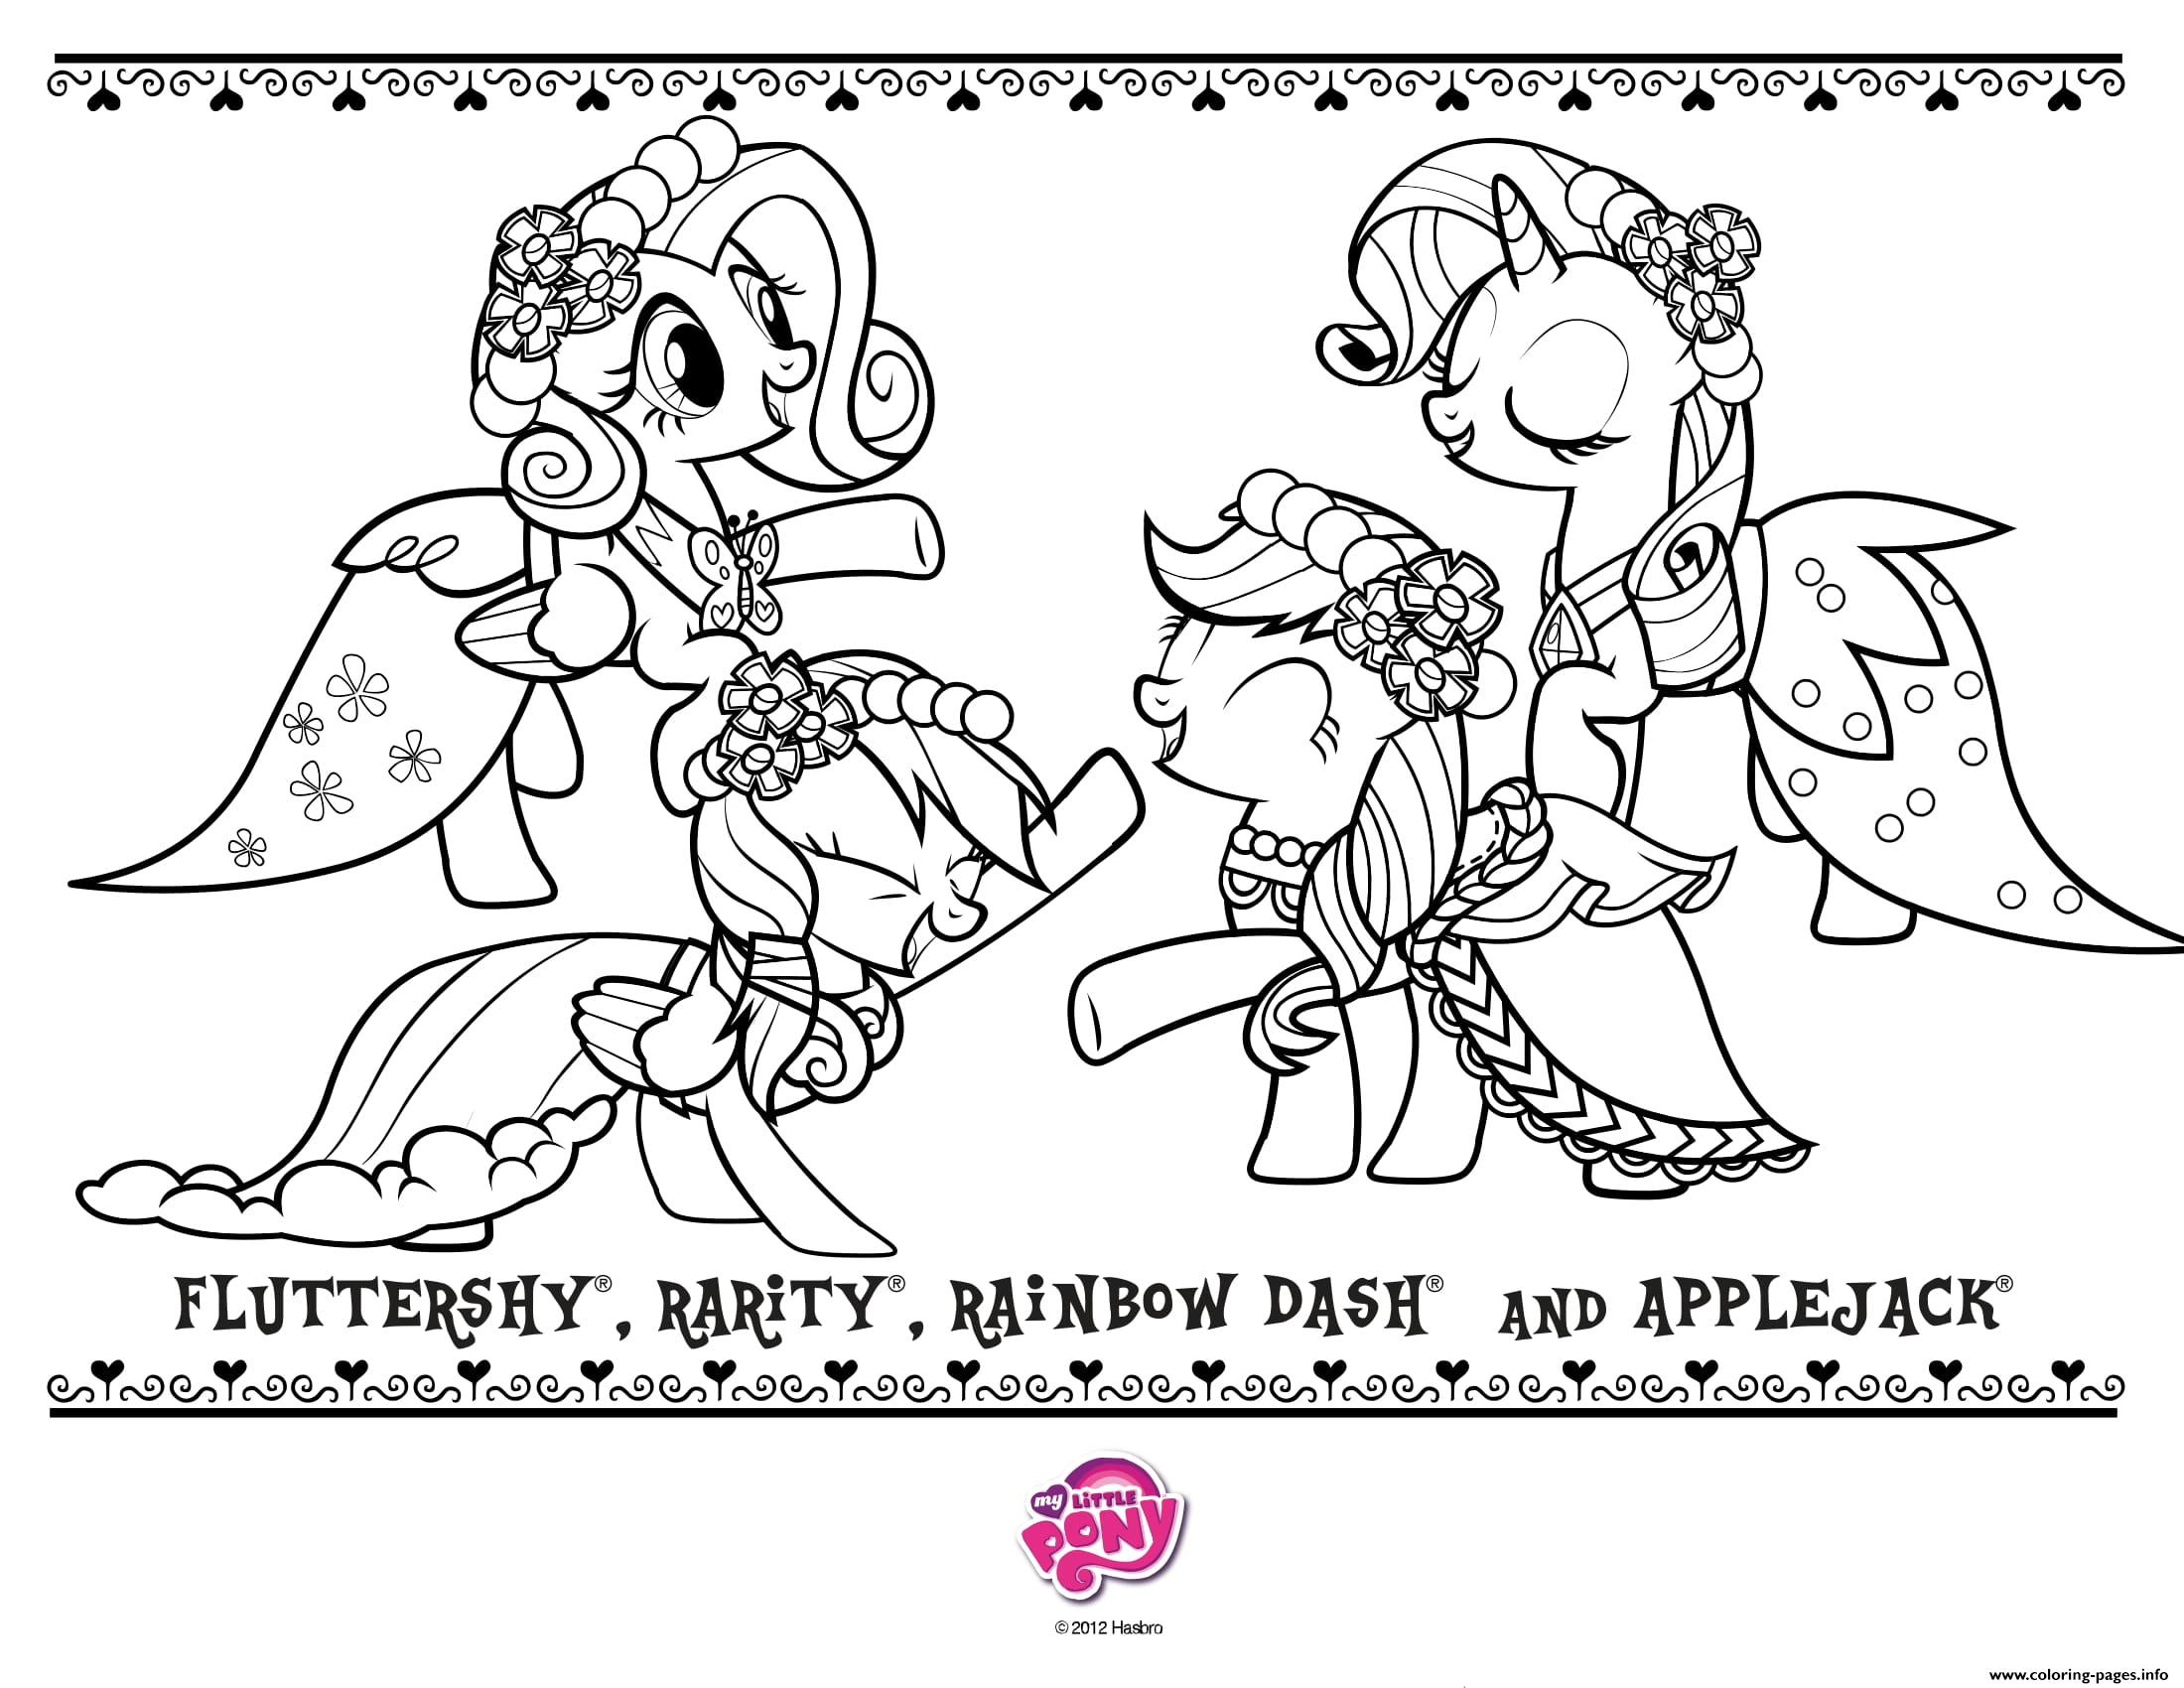 Fluttershy Rarity Rainboy Dash Applejack Coloring Pages